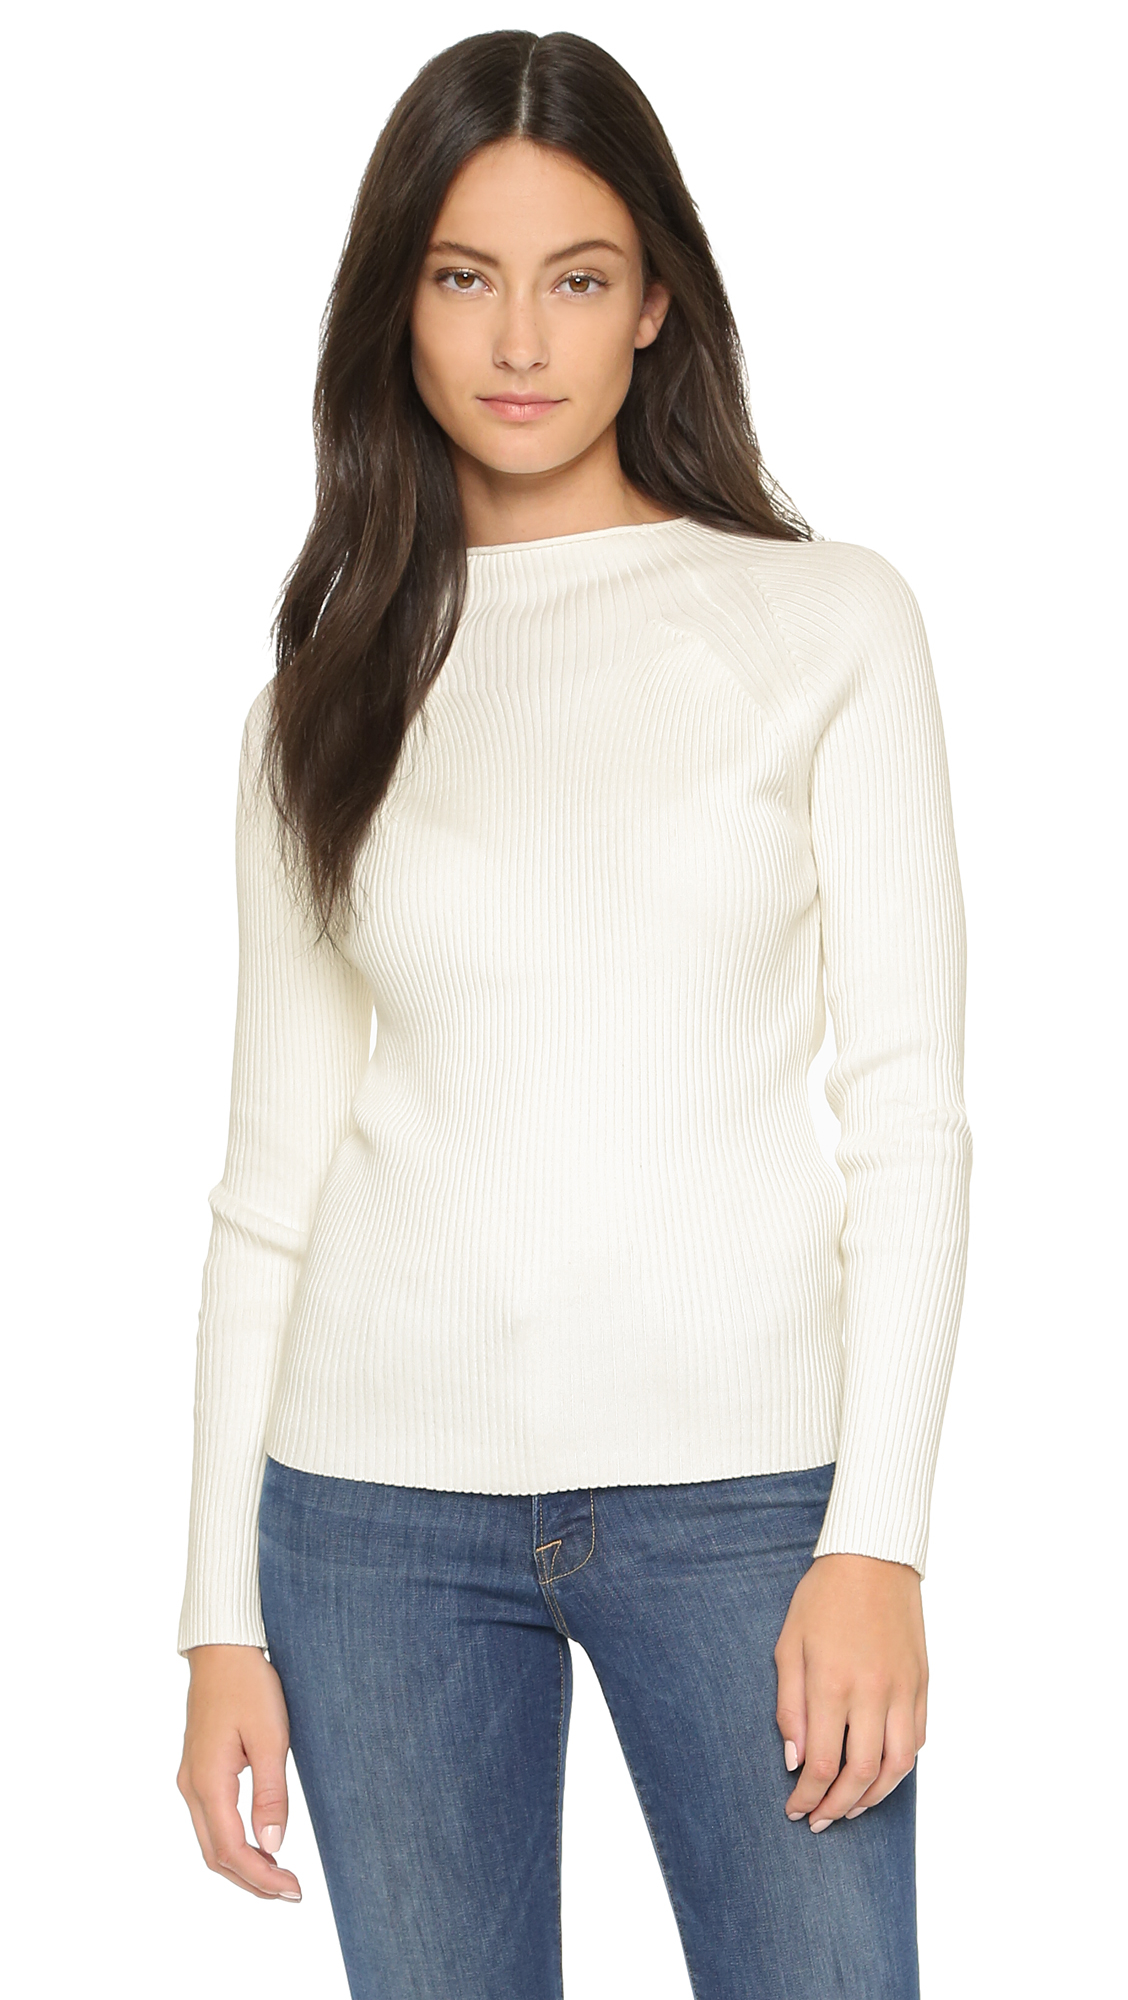 c961a8a1a52a59 Won Hundred Vega Ribbed Sweater in White - Lyst